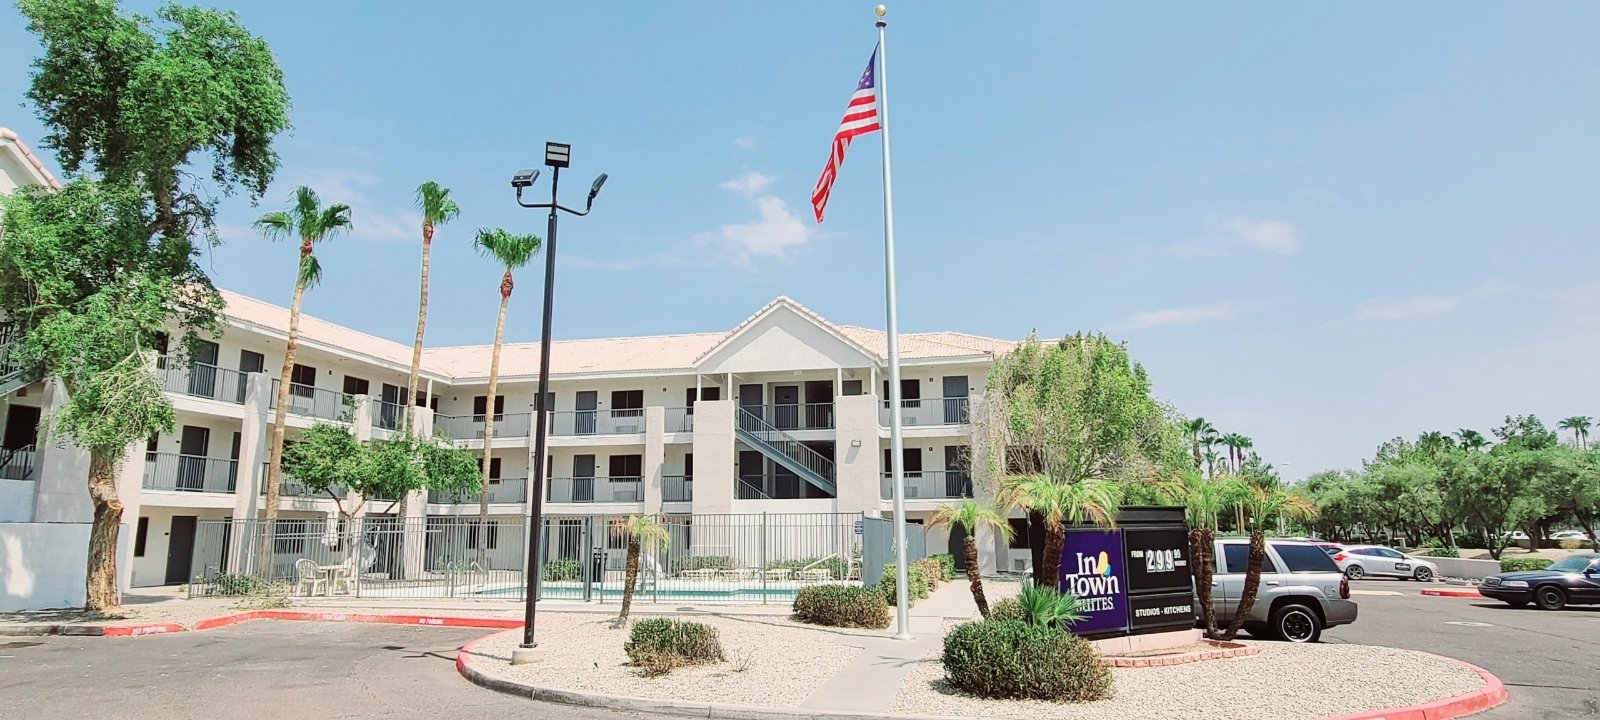 InTown Suites Extended Stay Phoenix AZ - Gilbert